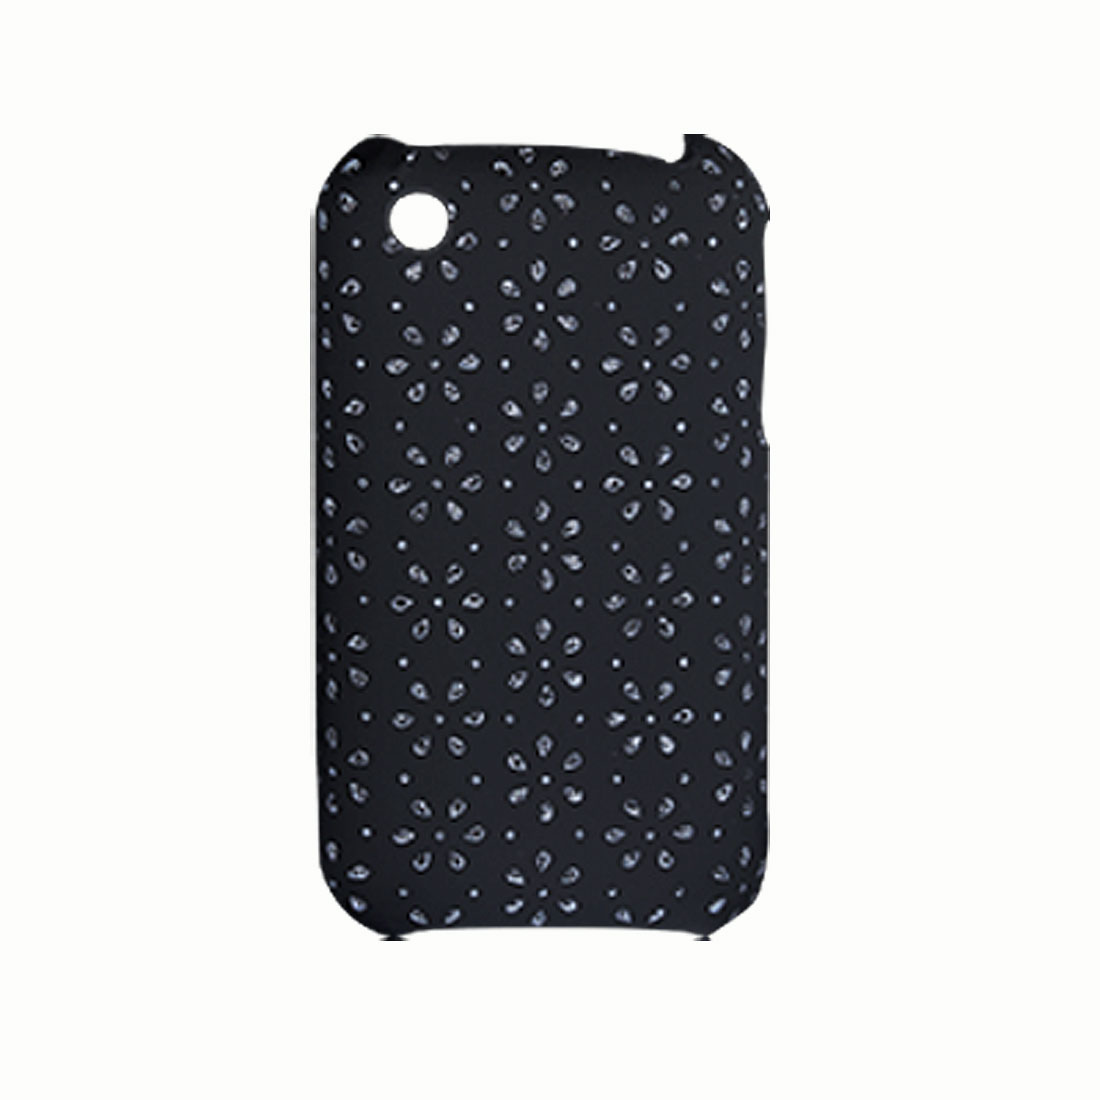 Black Leather Coated Plastic Back Case Cover for iPhone 3G